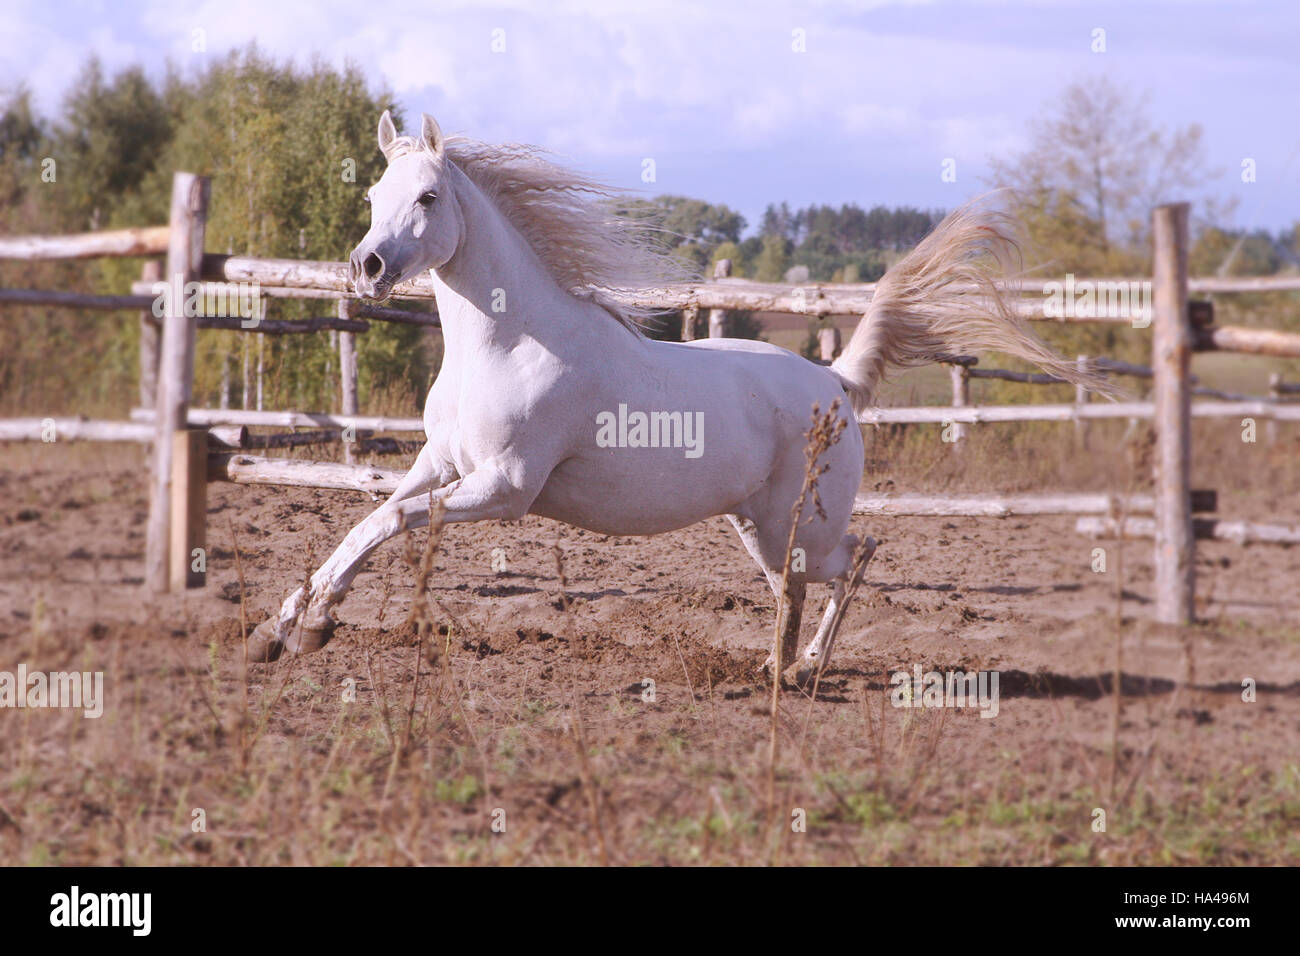 The Magnificent Arabian Horse High Resolution Stock Photography And Images Alamy